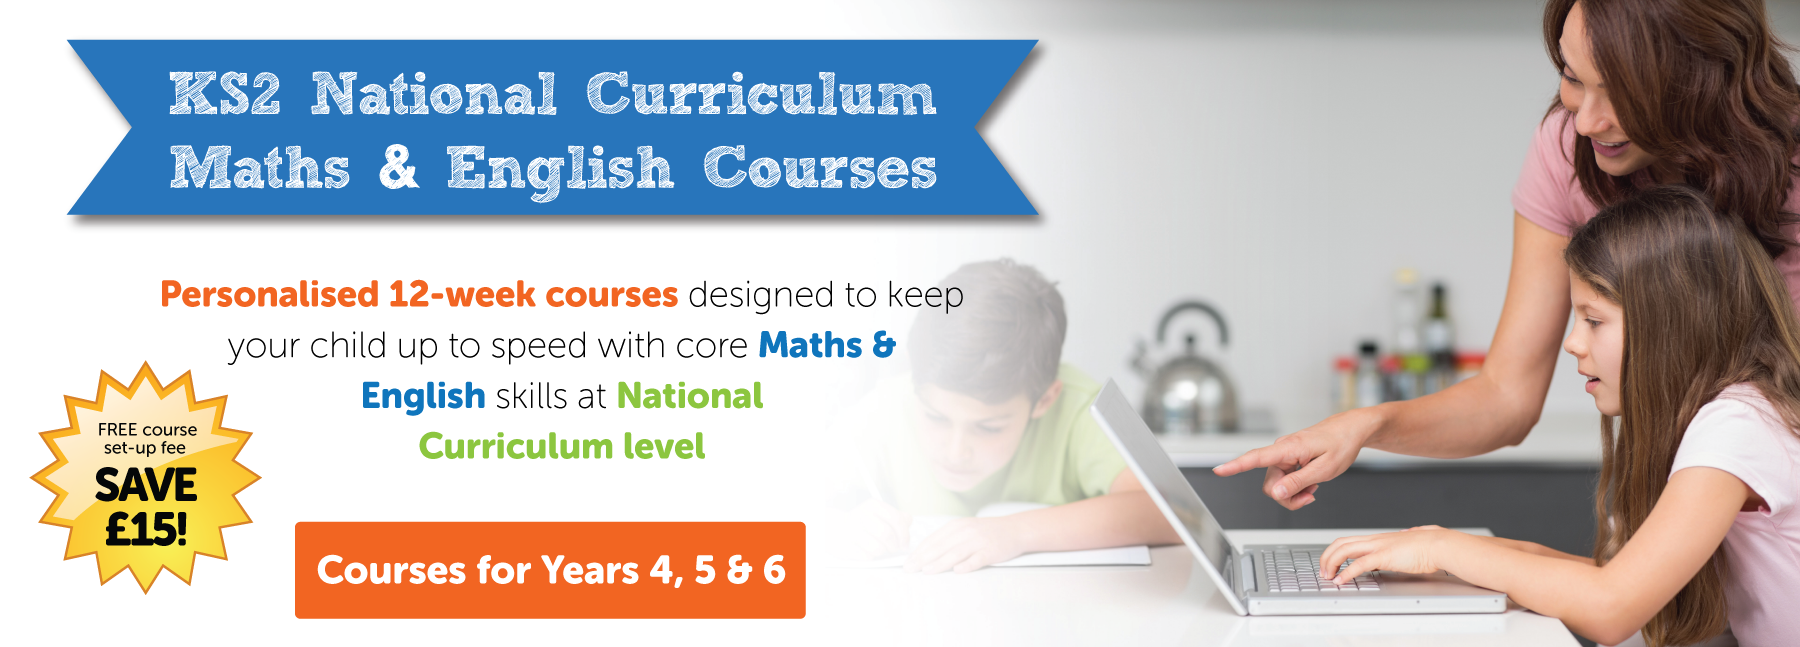 National Curriculum Courses